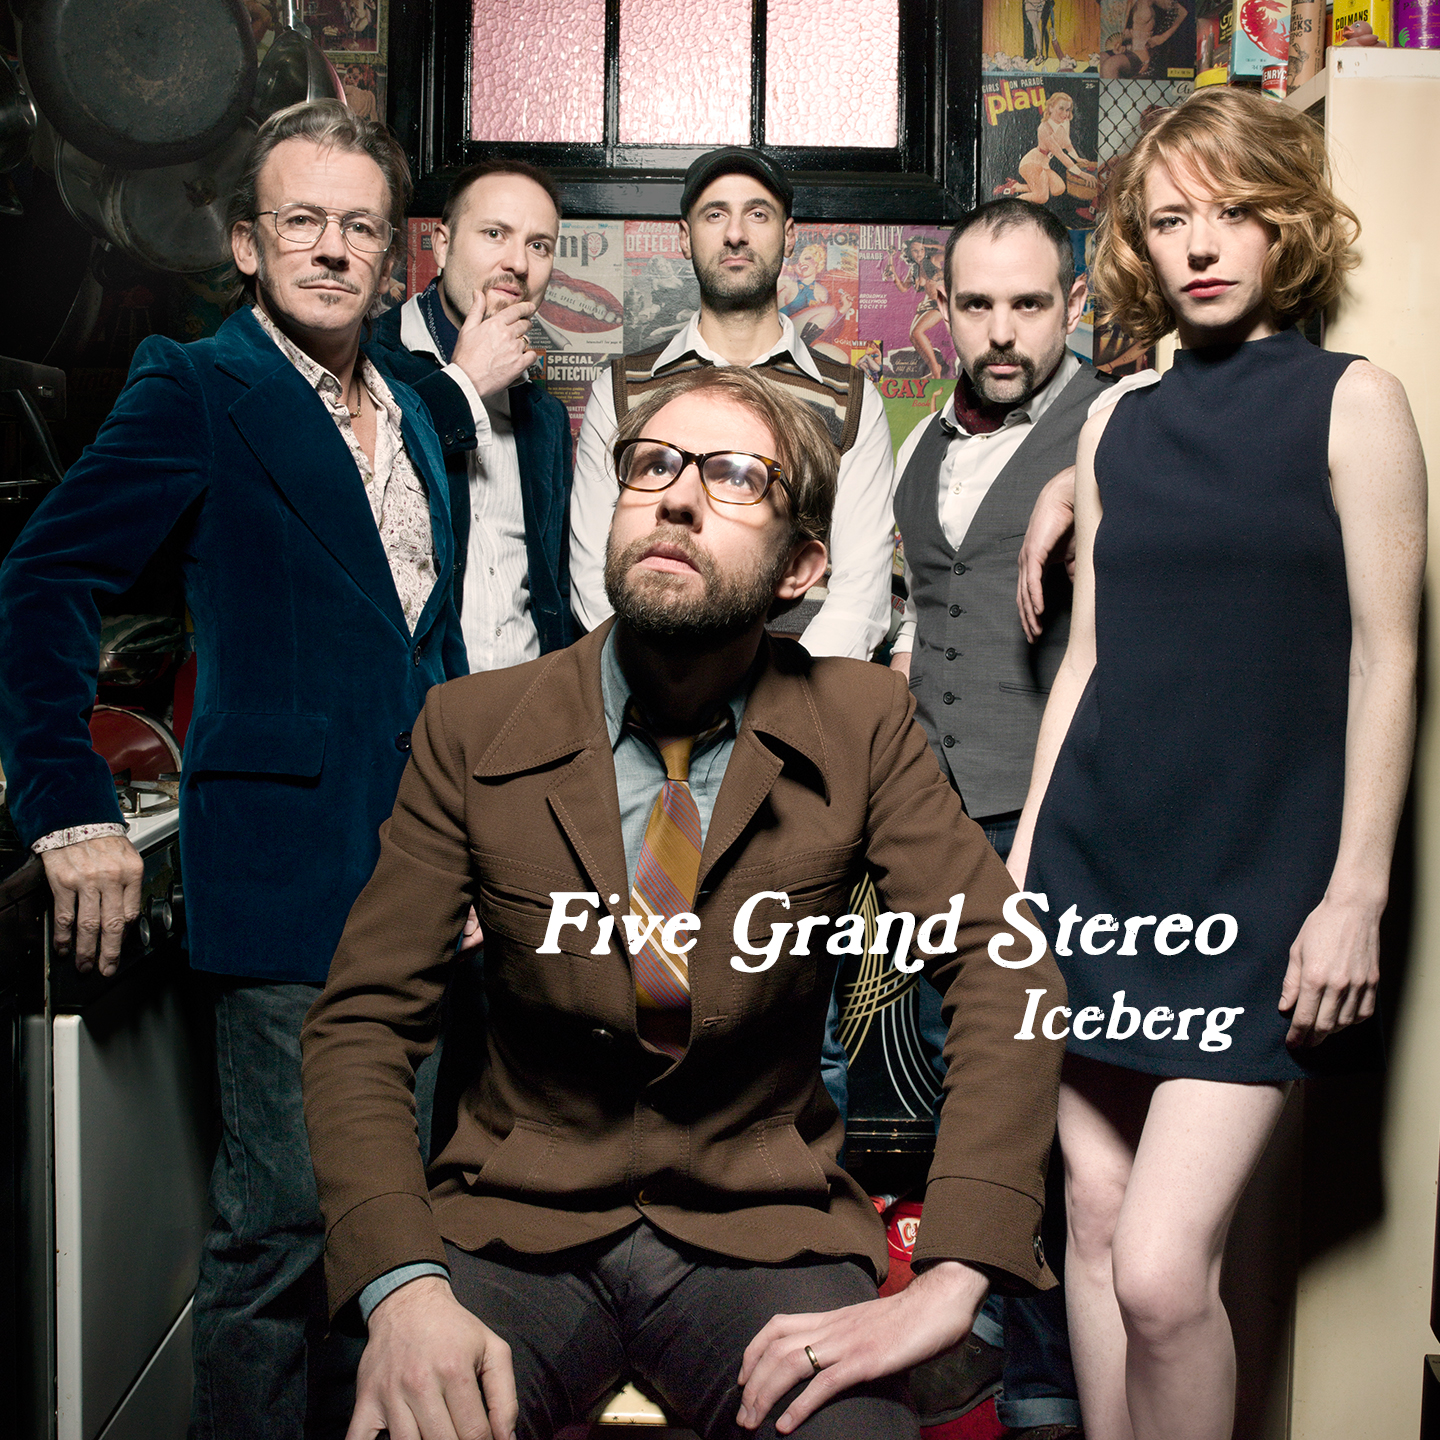 Iceberg by Five Grand Stereo